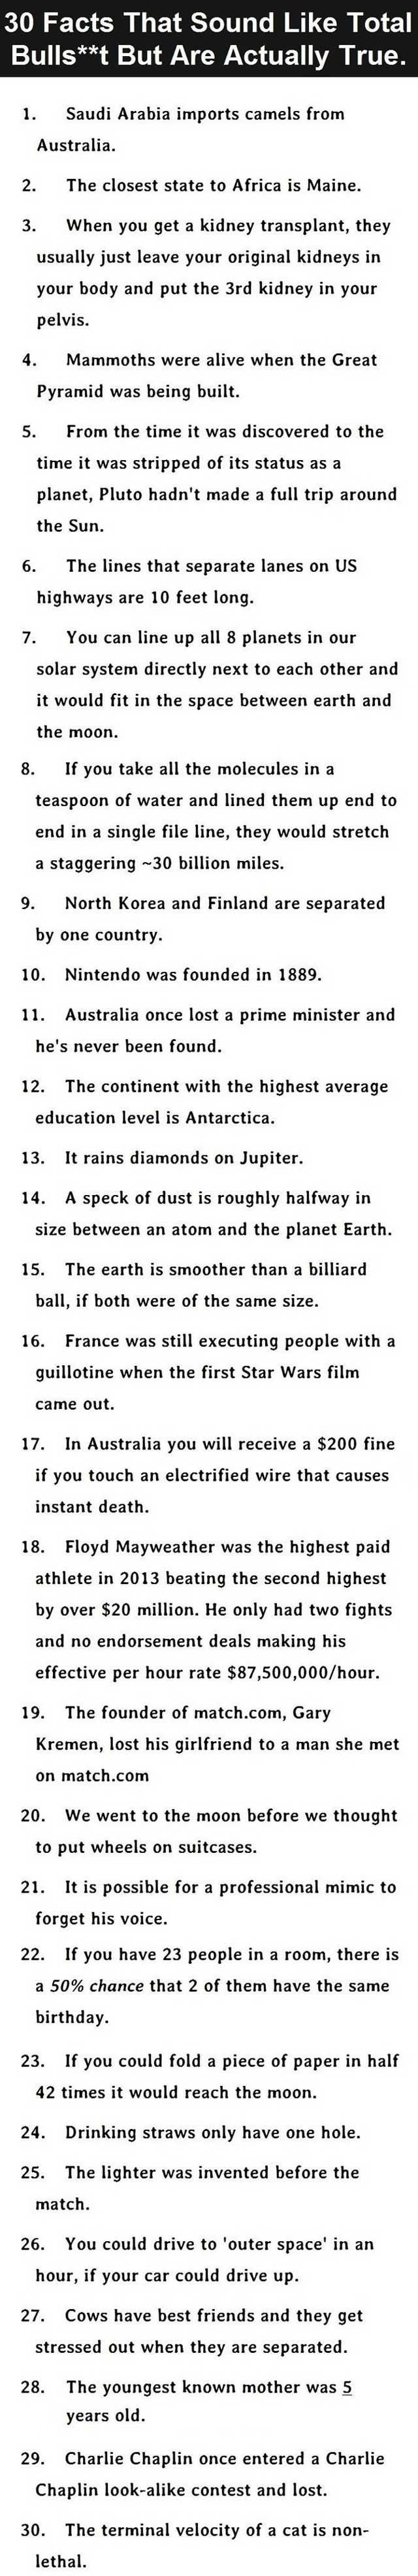 30 facts that don't sound like facts...but they are.